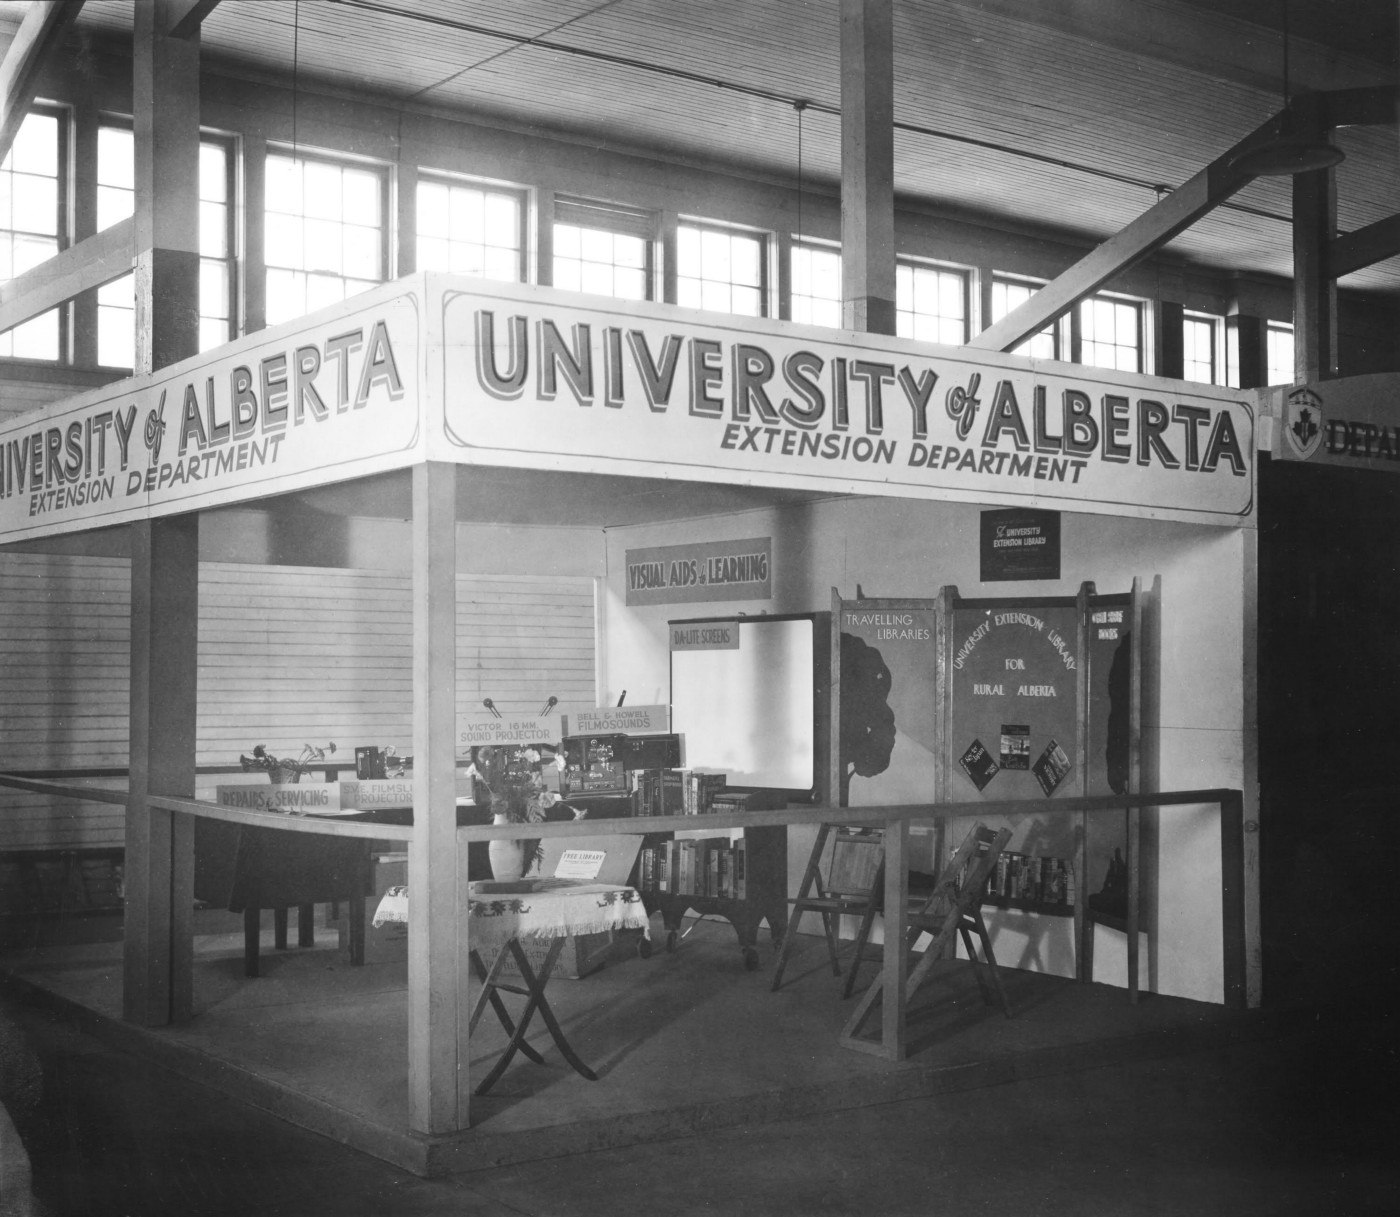 A historical look at the then, Department of Extension.